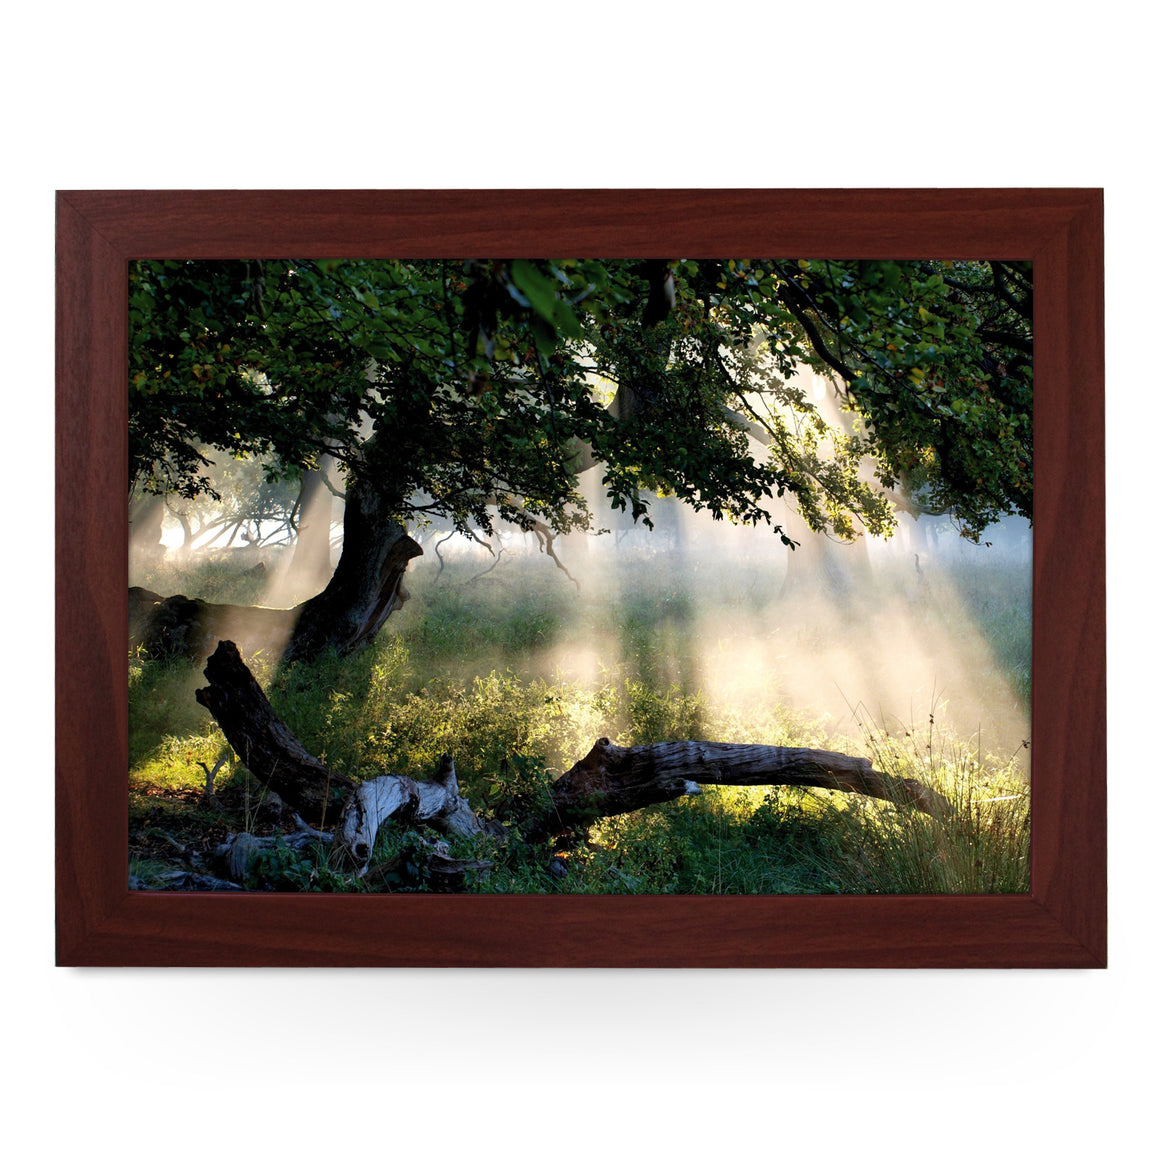 Sunlight Through A Tree Lap Tray - L0087